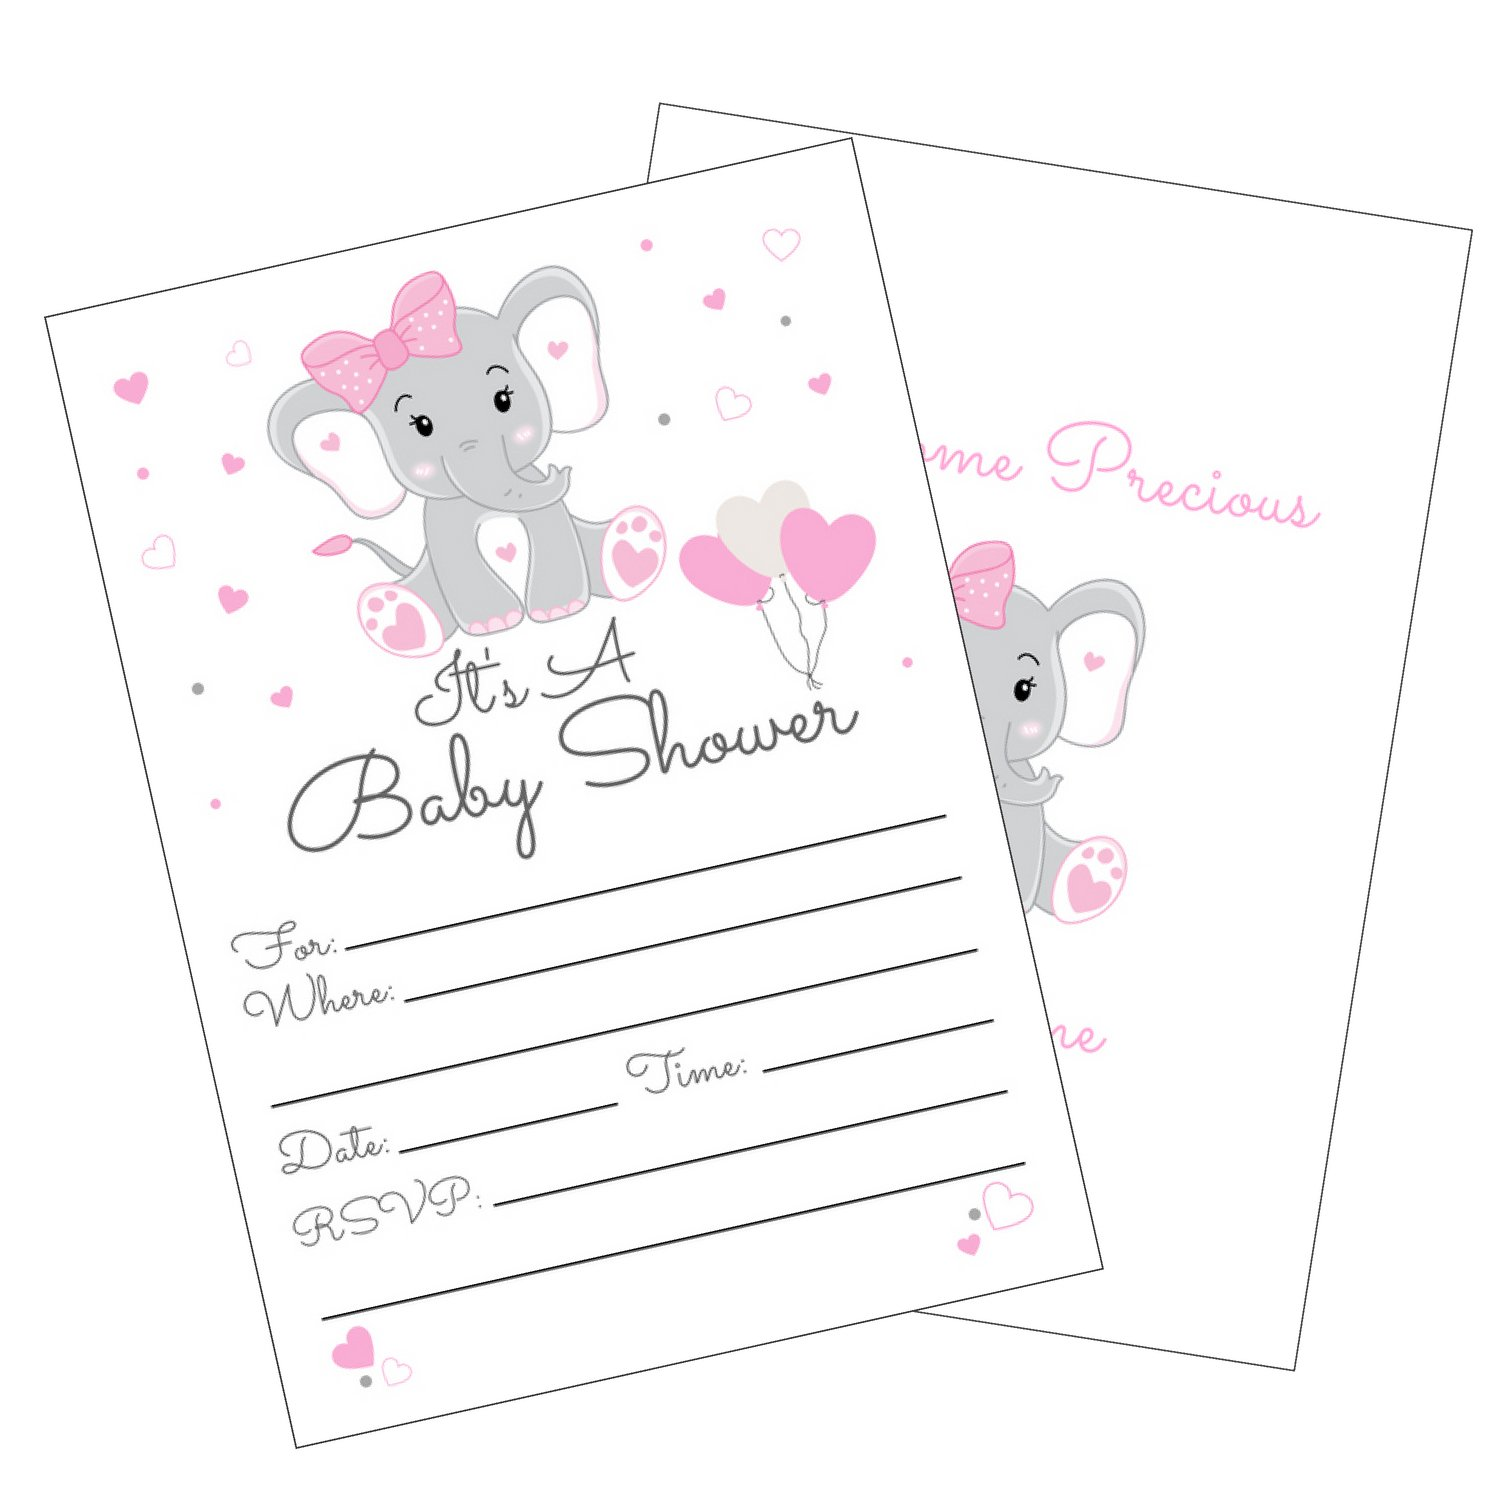 Pink Elephant Girl Baby Shower Invitations with Envelopes for Elephant Theme Baby Shower -Fill in Invites (Large 5x7) 25 Count